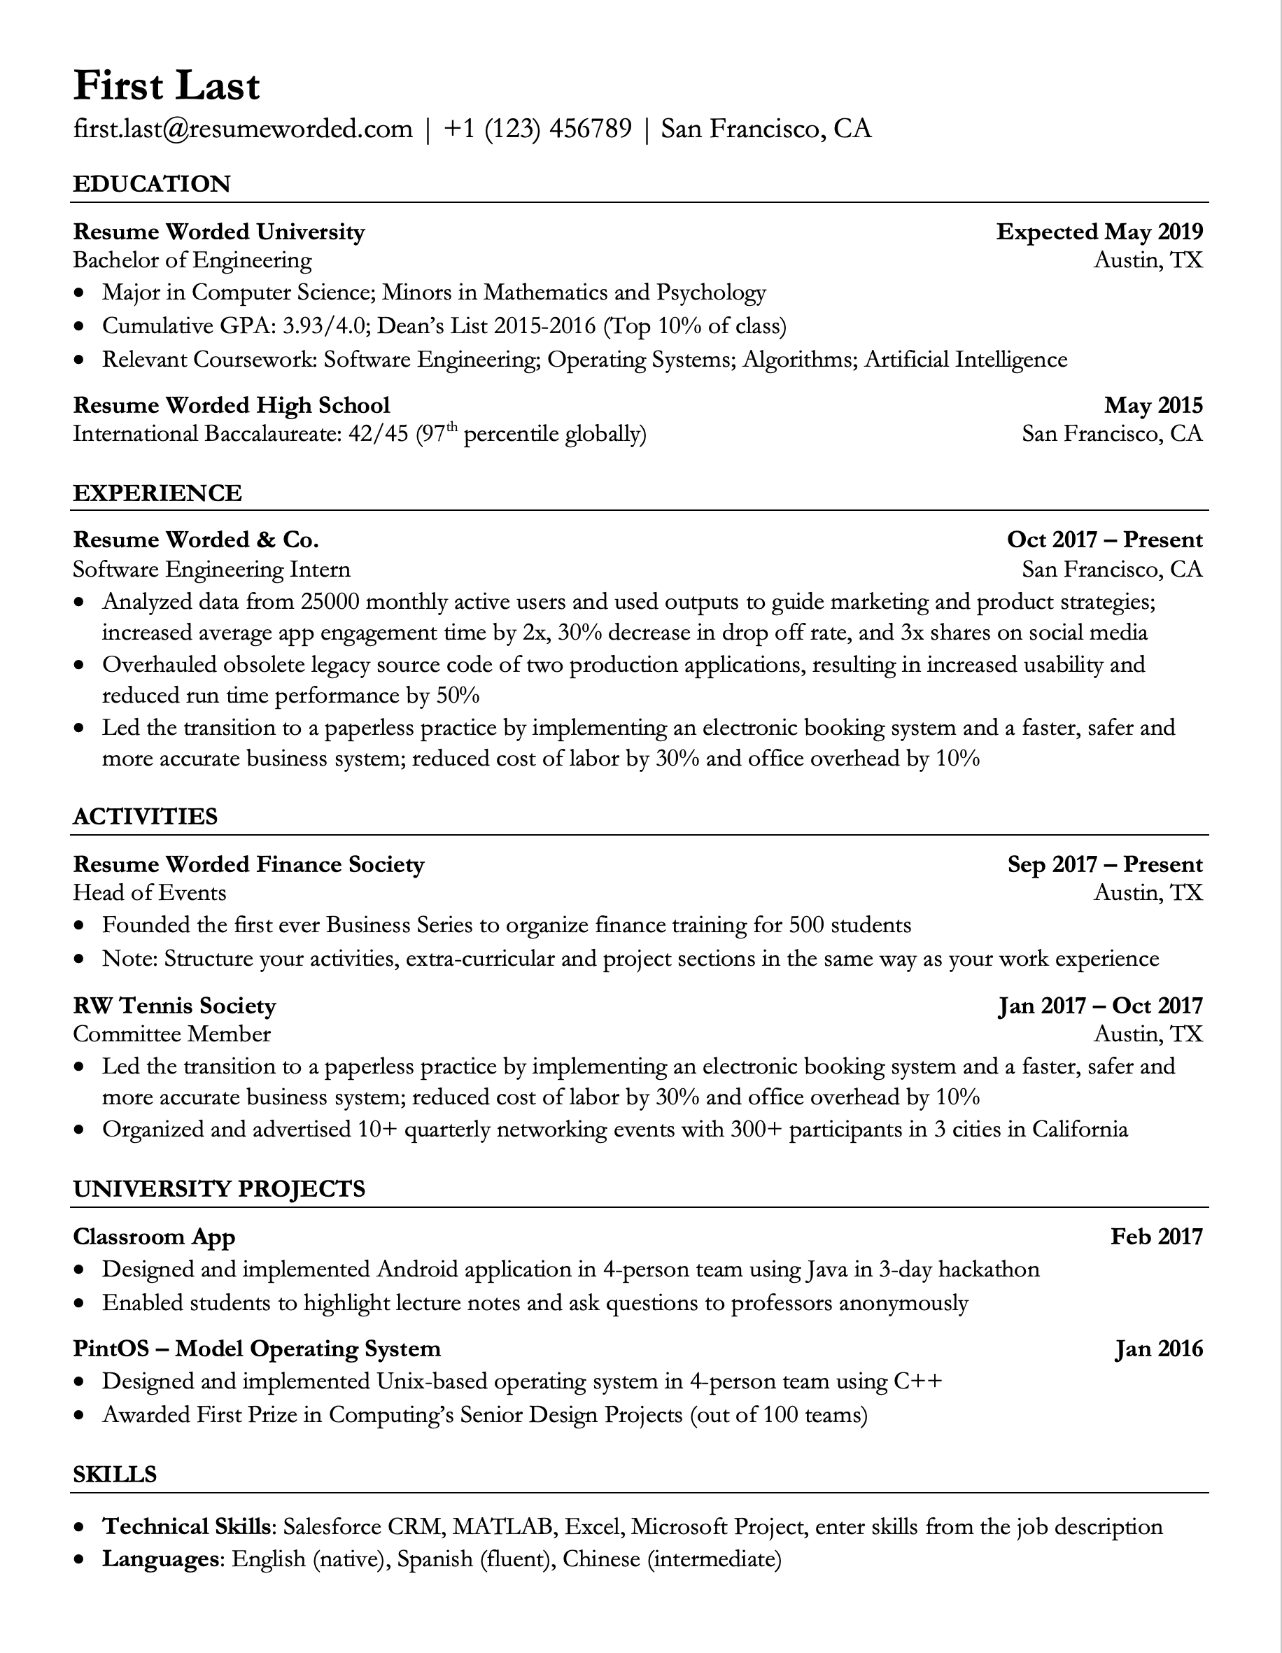 Professional Ats Resume Templates For Experienced Hires